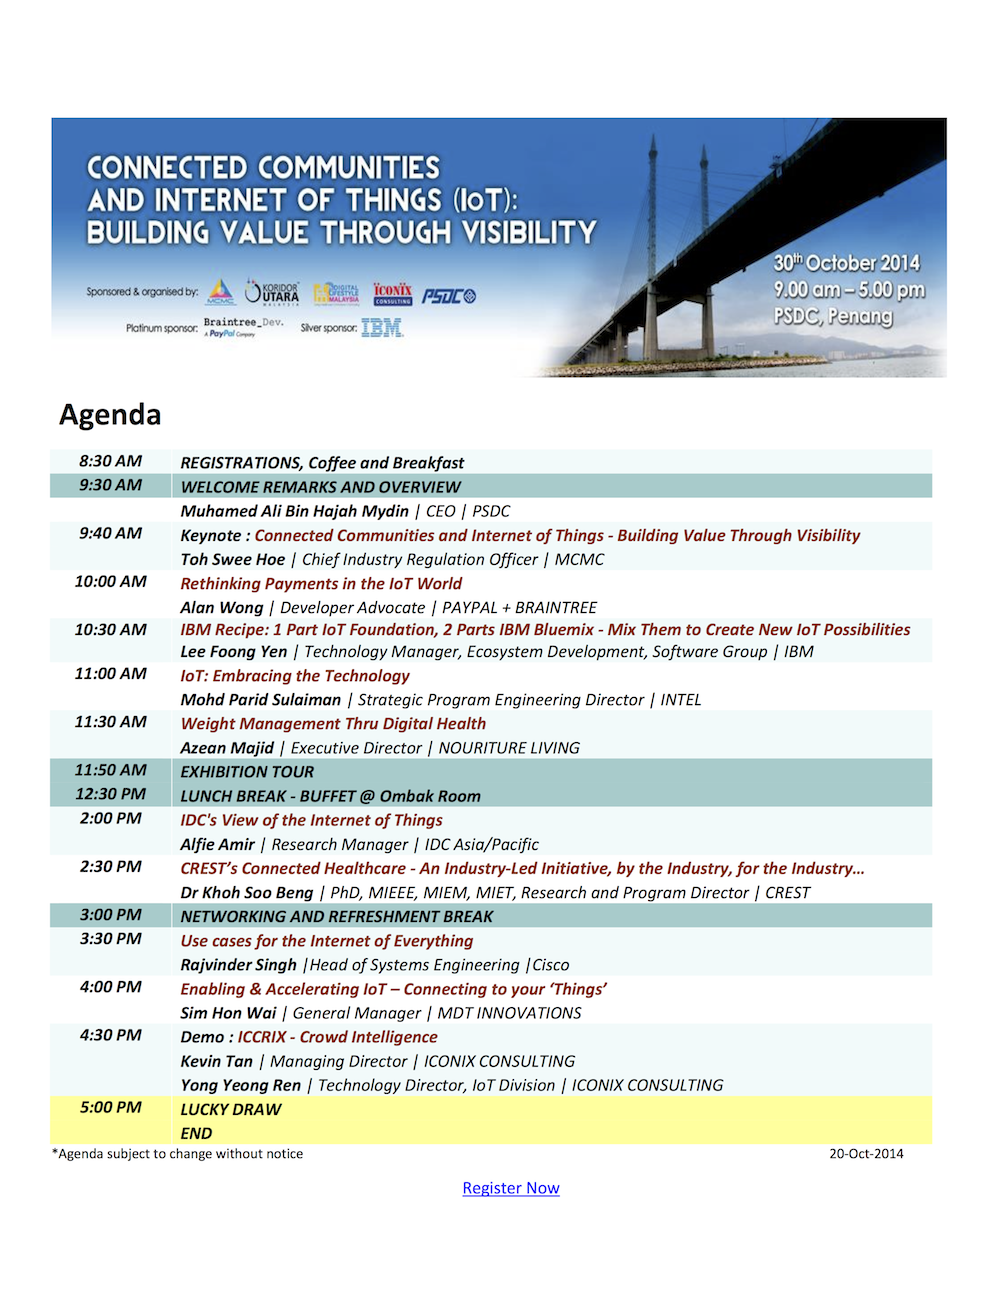 Connected Communities and Internet of Things Programme Details